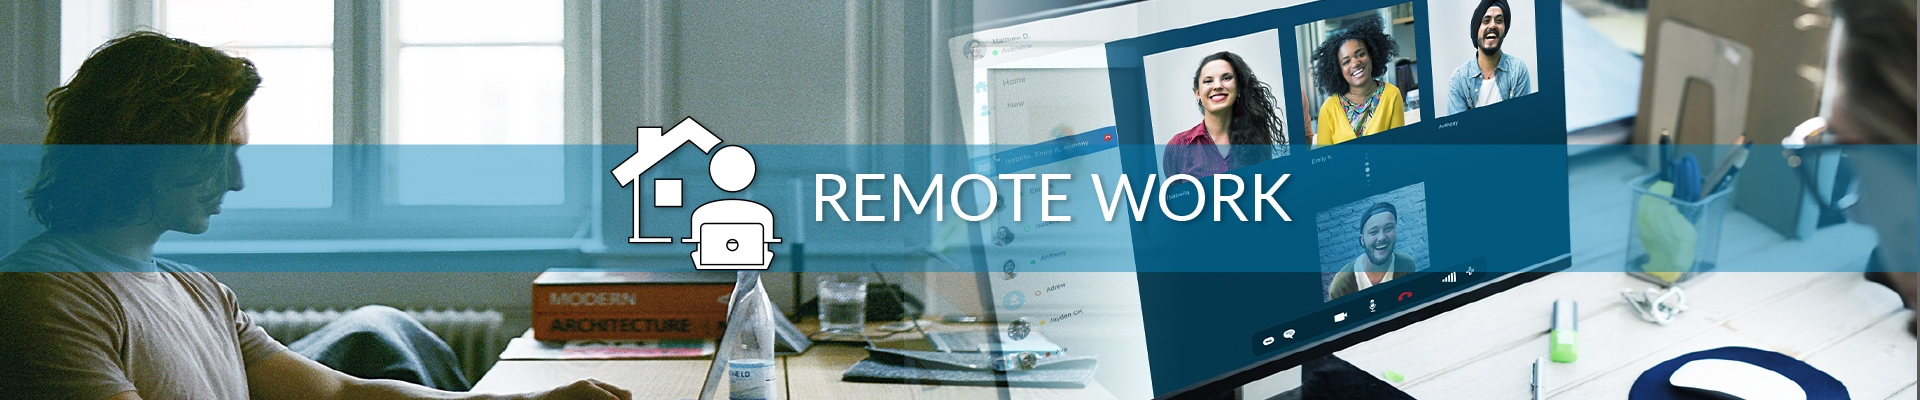 GBS Remote Work Banner